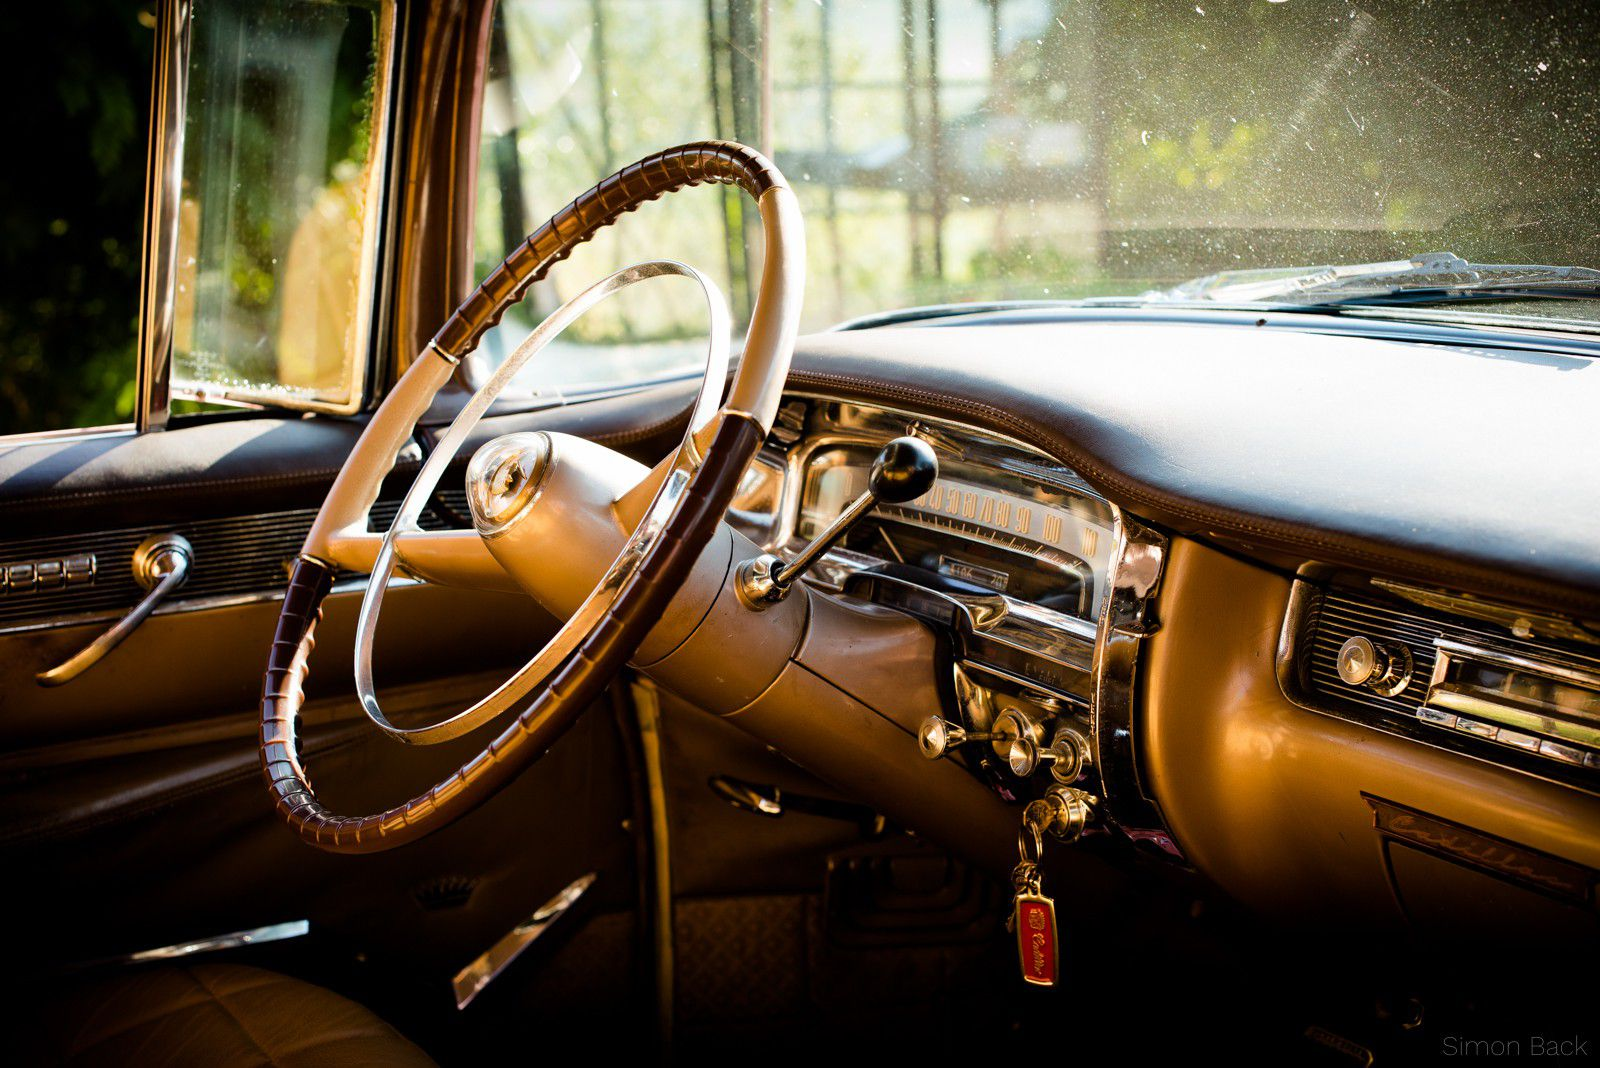 Cadillac Coupe DeVille - Details im Innenraum